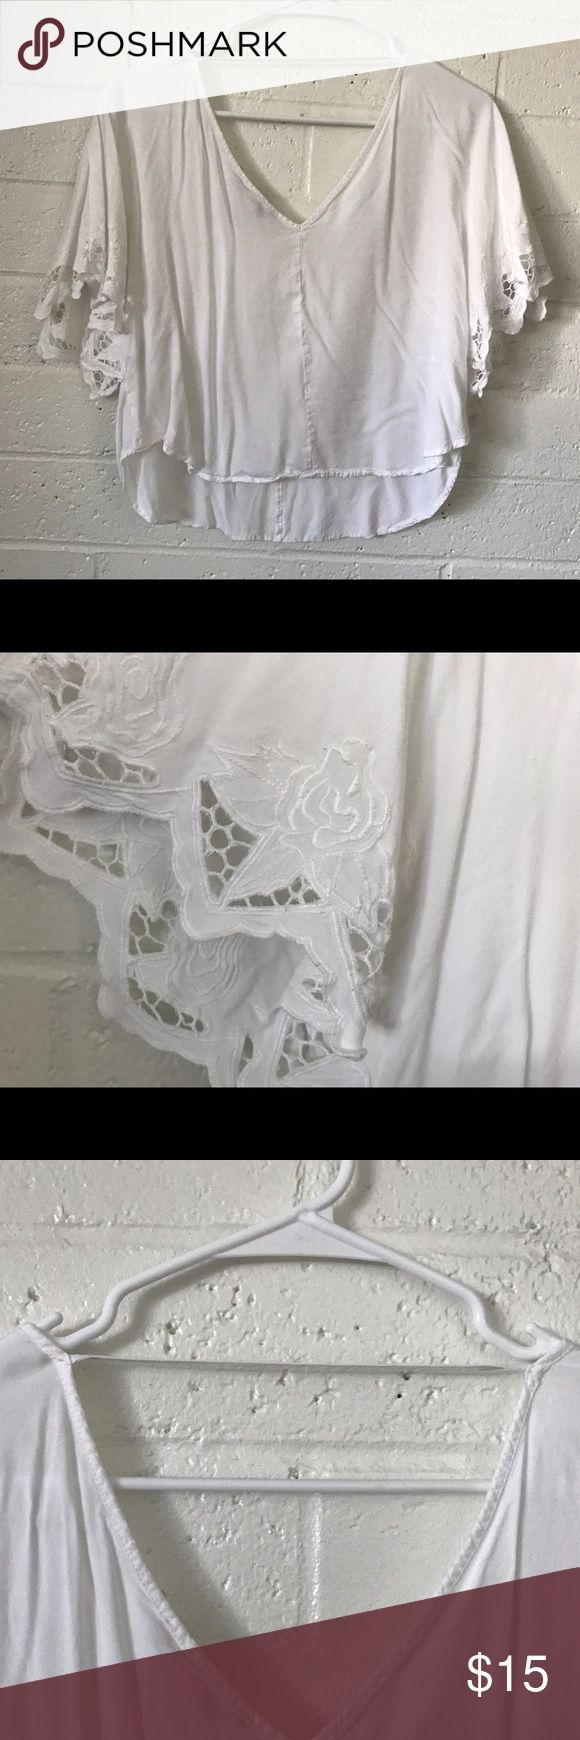 White lace shirt Lace on baggy sleeves, strap of fabric across scooped back. Tops Blouses